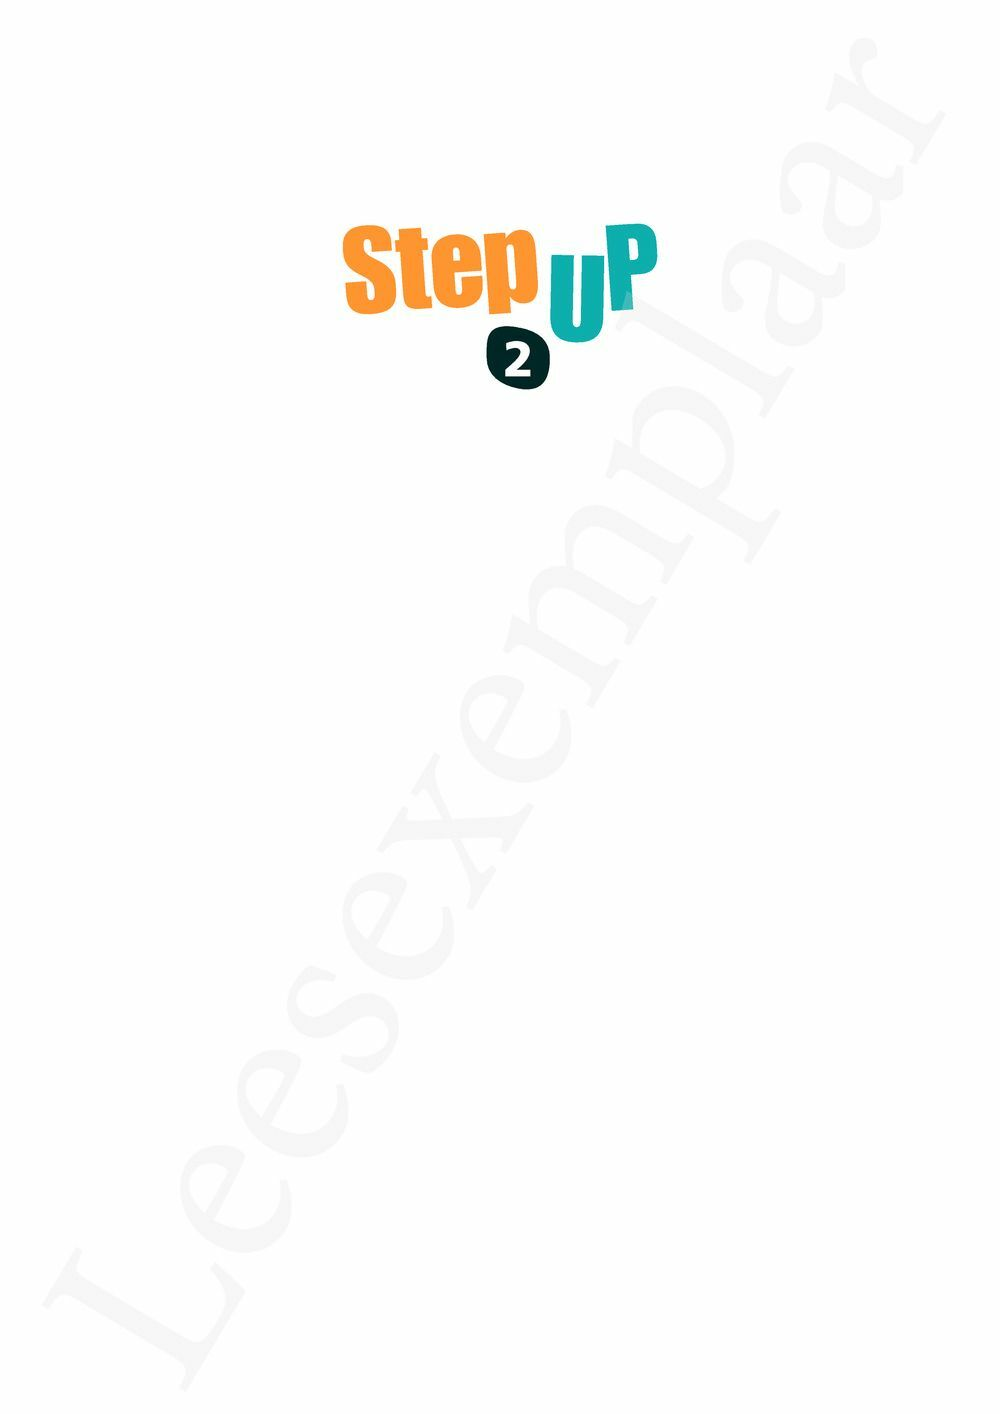 Preview: Step up 2 Livre de l'élève